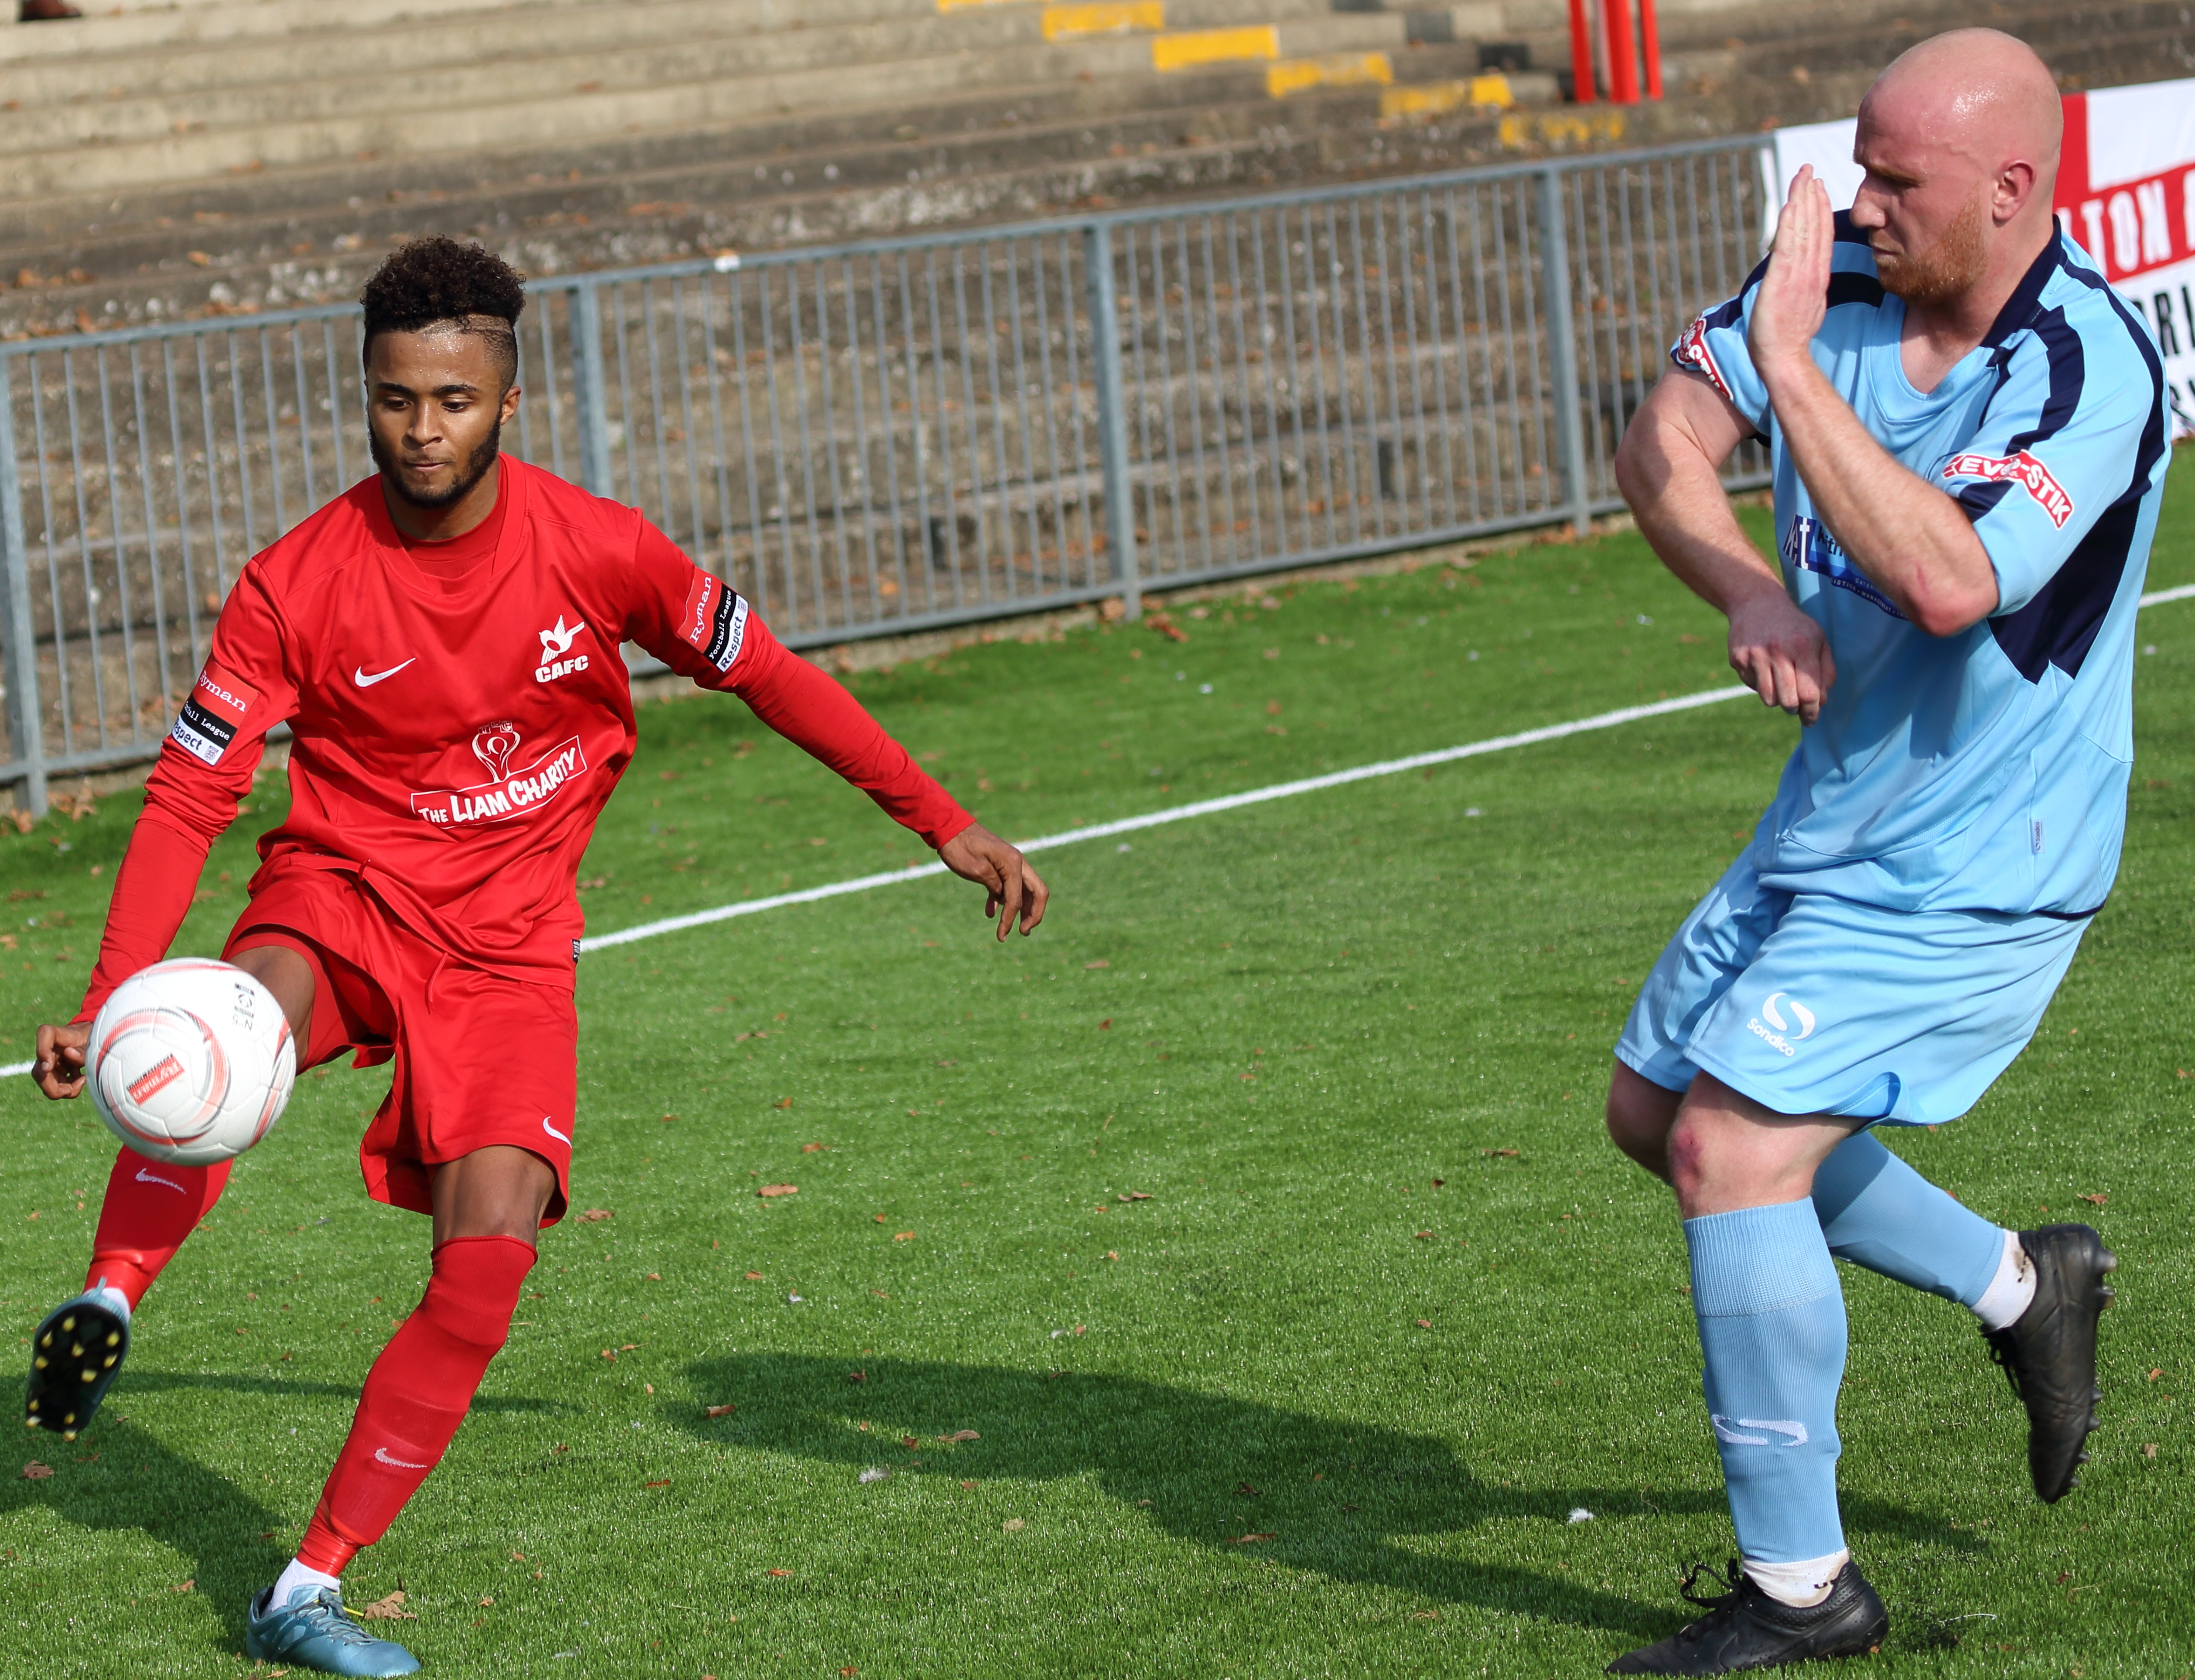 Carshalton v Leighton FA Trophy 2015